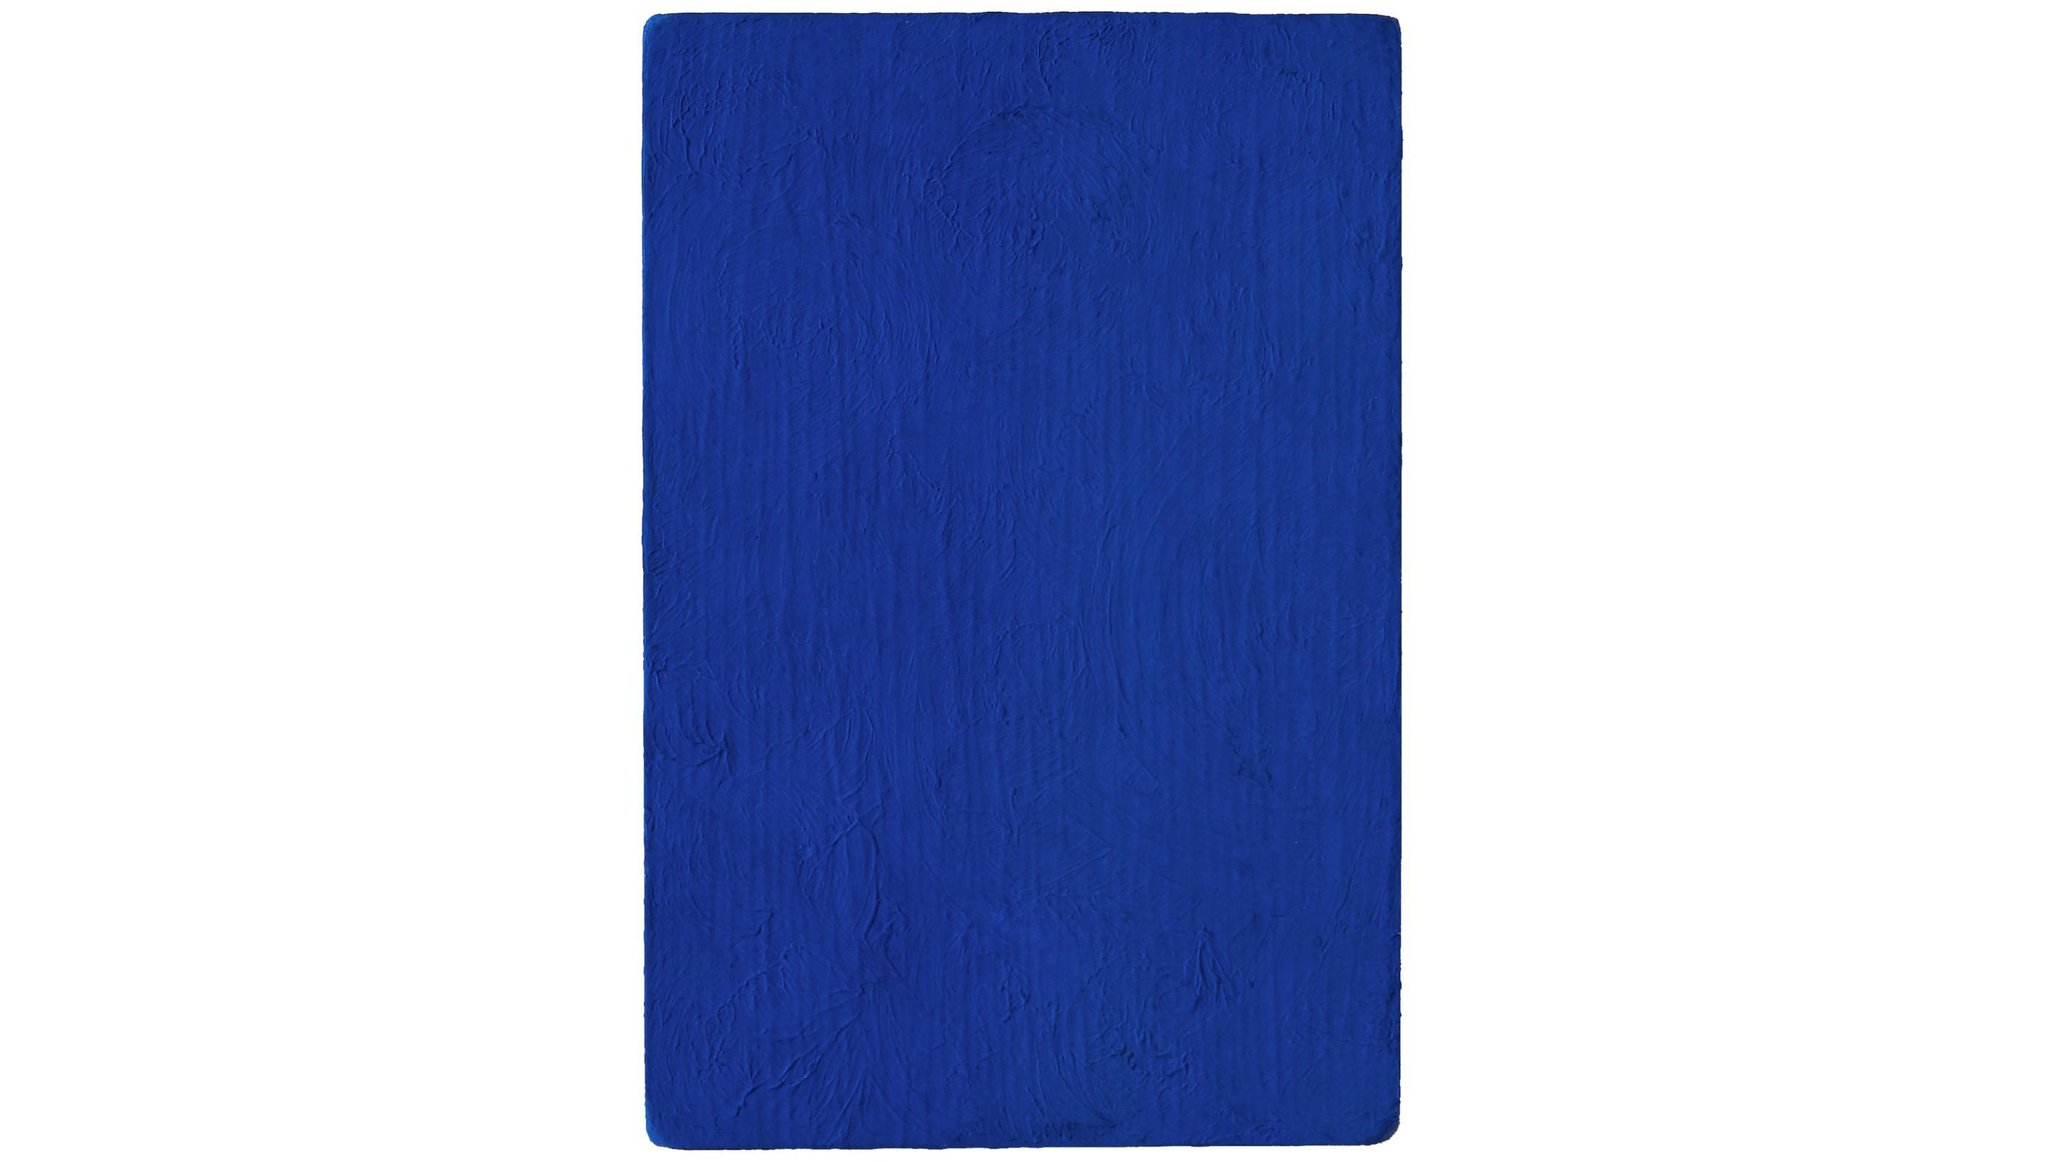 Un Monocromo blu (IKB 98) del 1957 (courtesy of Succession Yves Klein c/o ADAGP Paris)